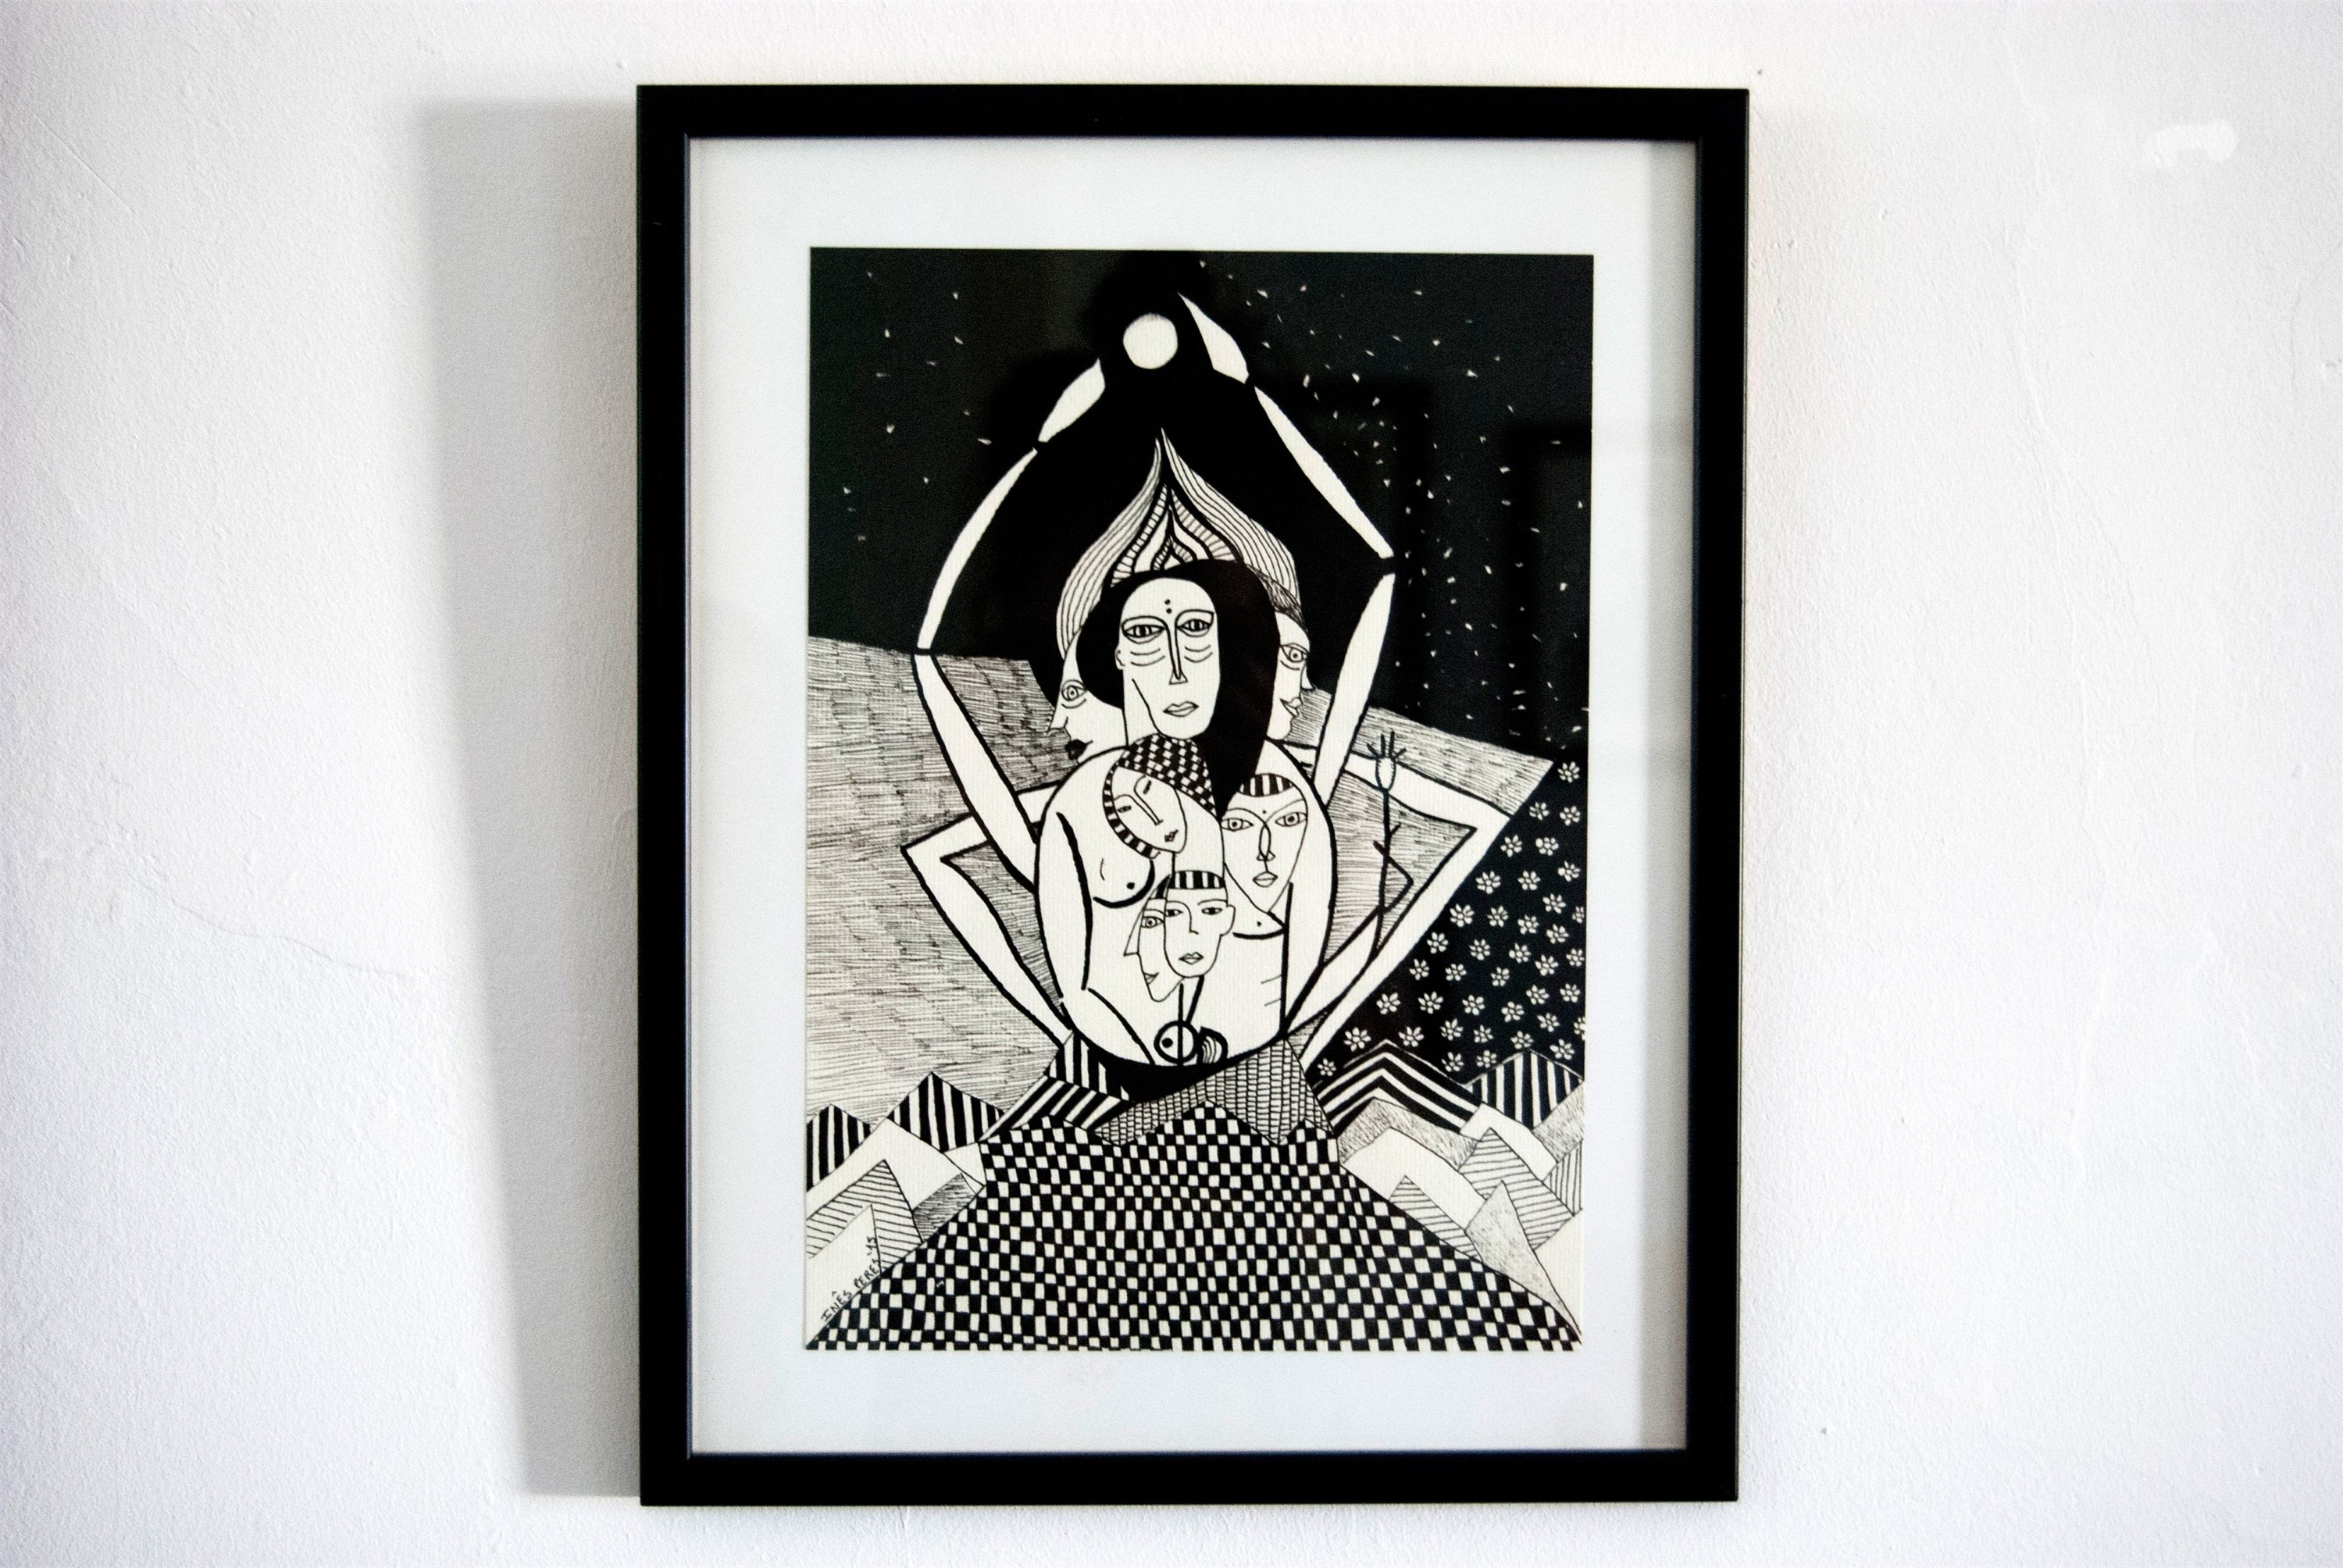 Celebrando, original Abstract Ink Drawing and Illustration by Inês Peres